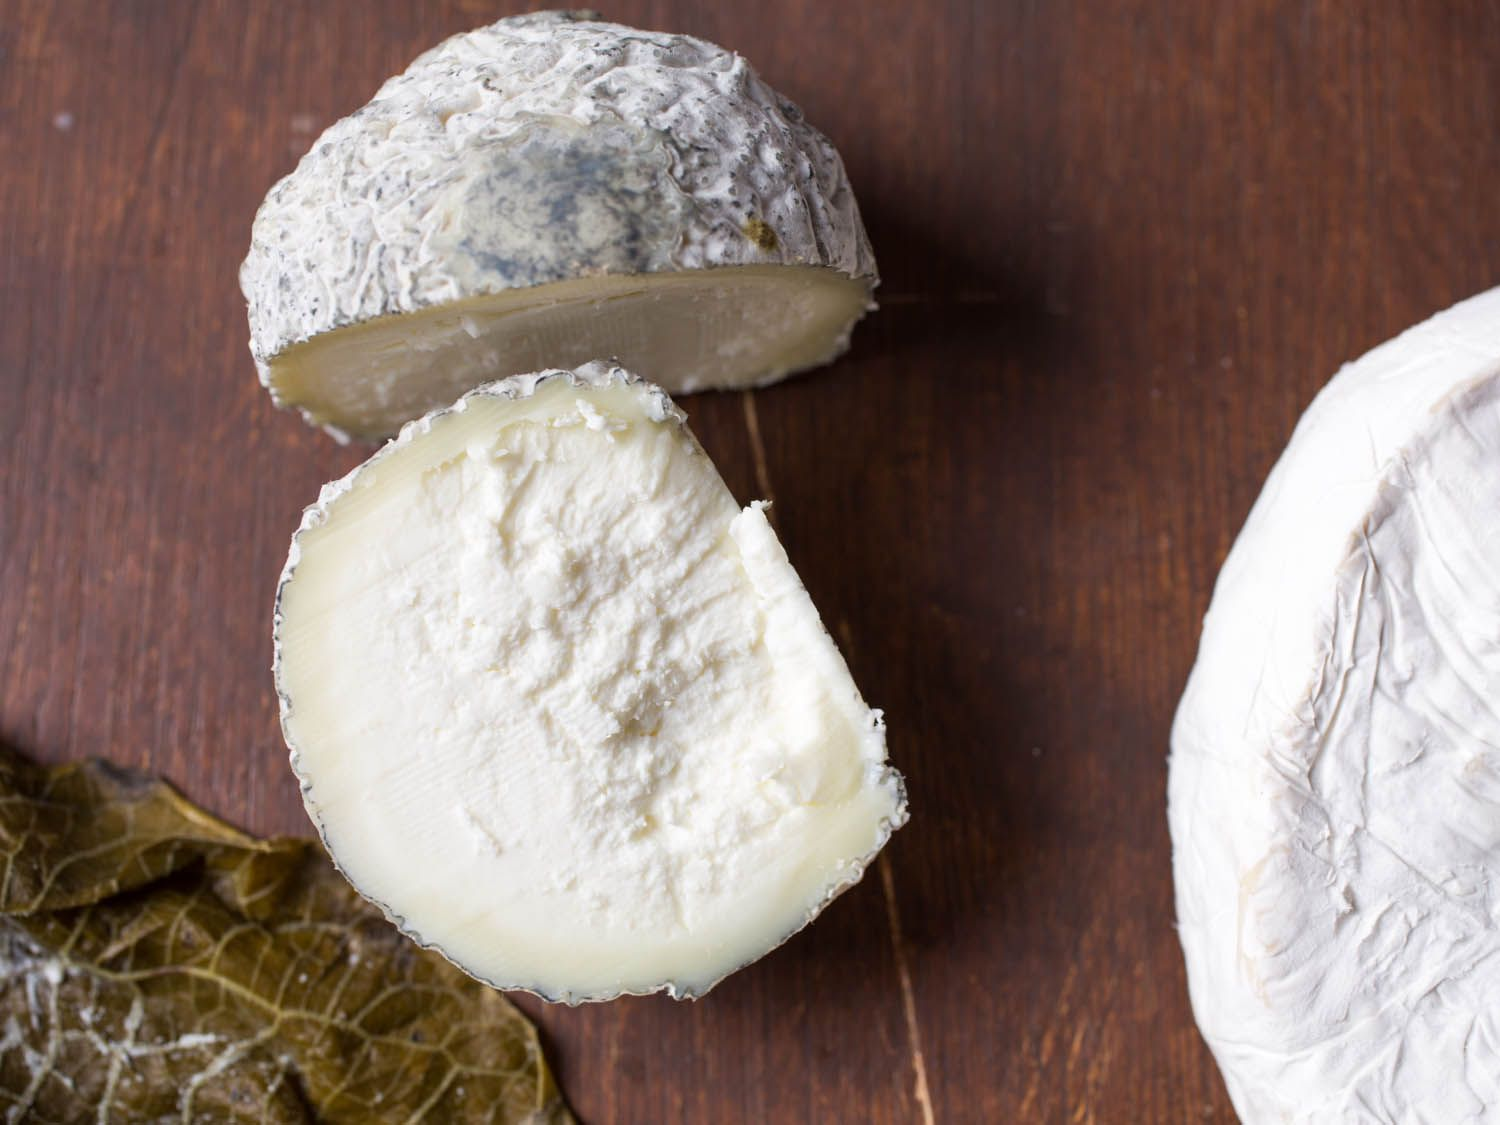 20141021-cheese101-southern-cheese-wabash-cannonball-vicky-wasik-20.jpg